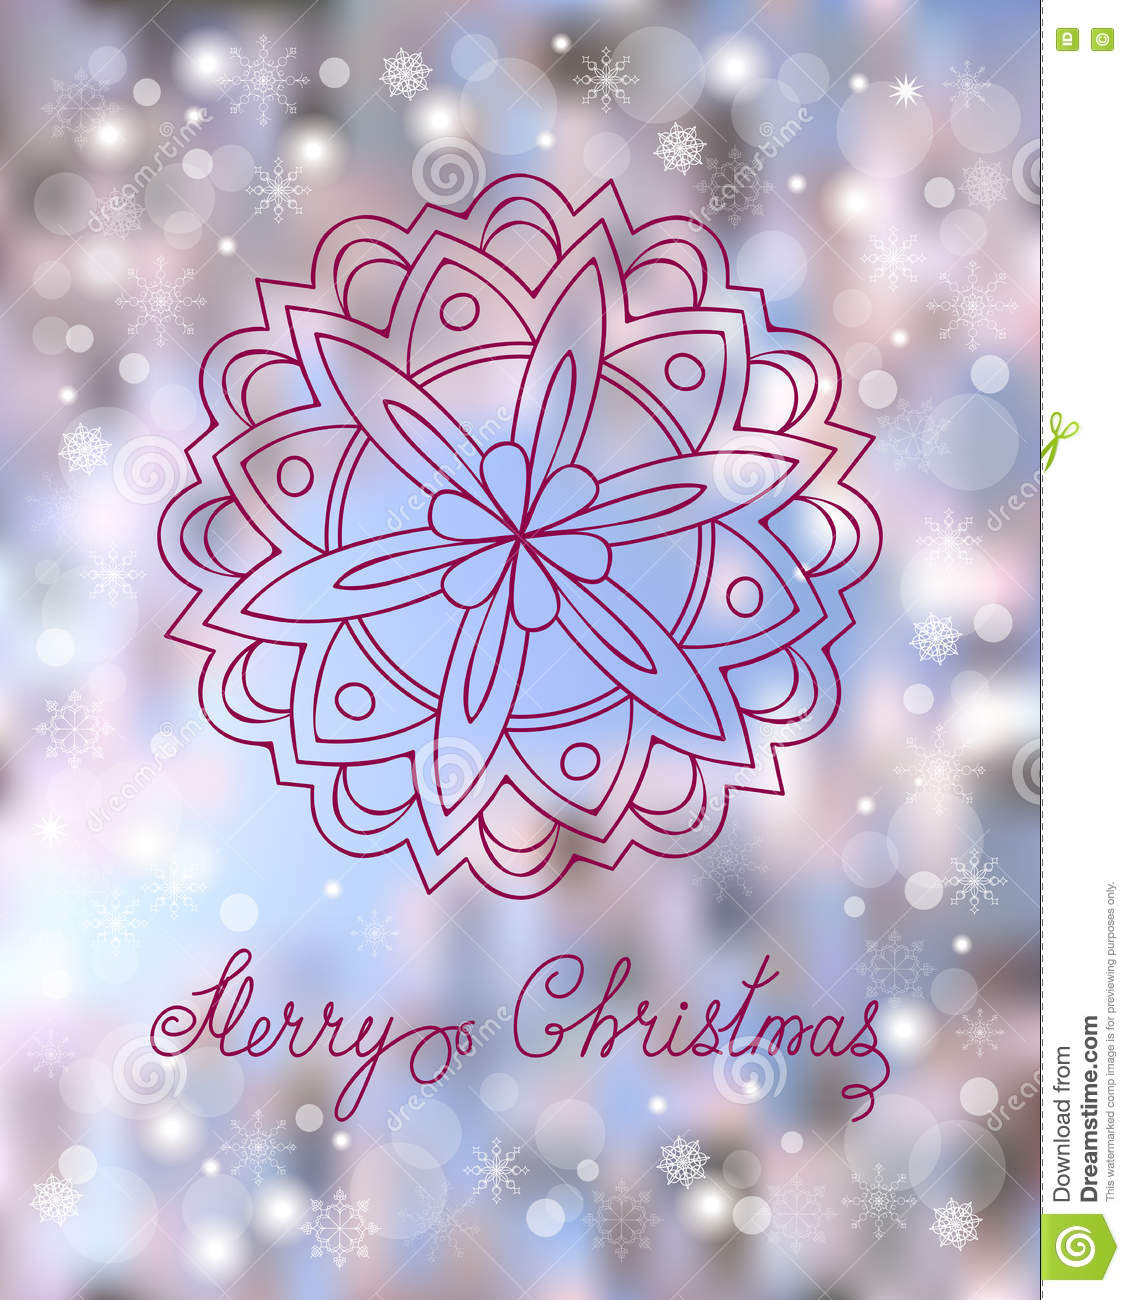 Festive Christmas Card With Hand Drawn Decorated Mandala Snowflakes And Calligraphy Text Merry On The Colorful Background